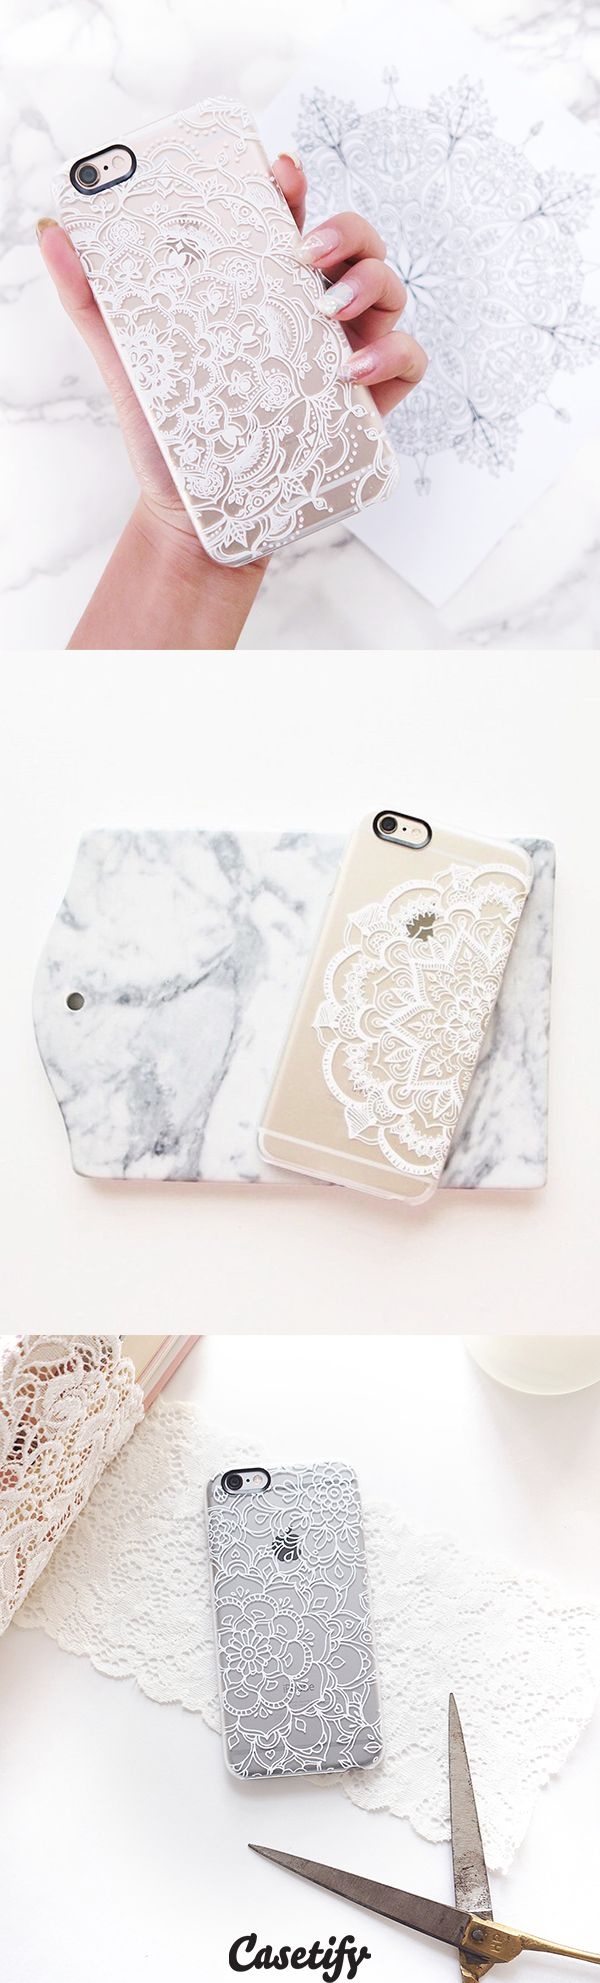 Most favourite mandala lace iPhone 6 protective phone case designs | Click through to see more iPhone phone case idea >>> https://www.casetify.com/collections/iphone-6s-mandala-cases/?device=iphone-6s | @casetify